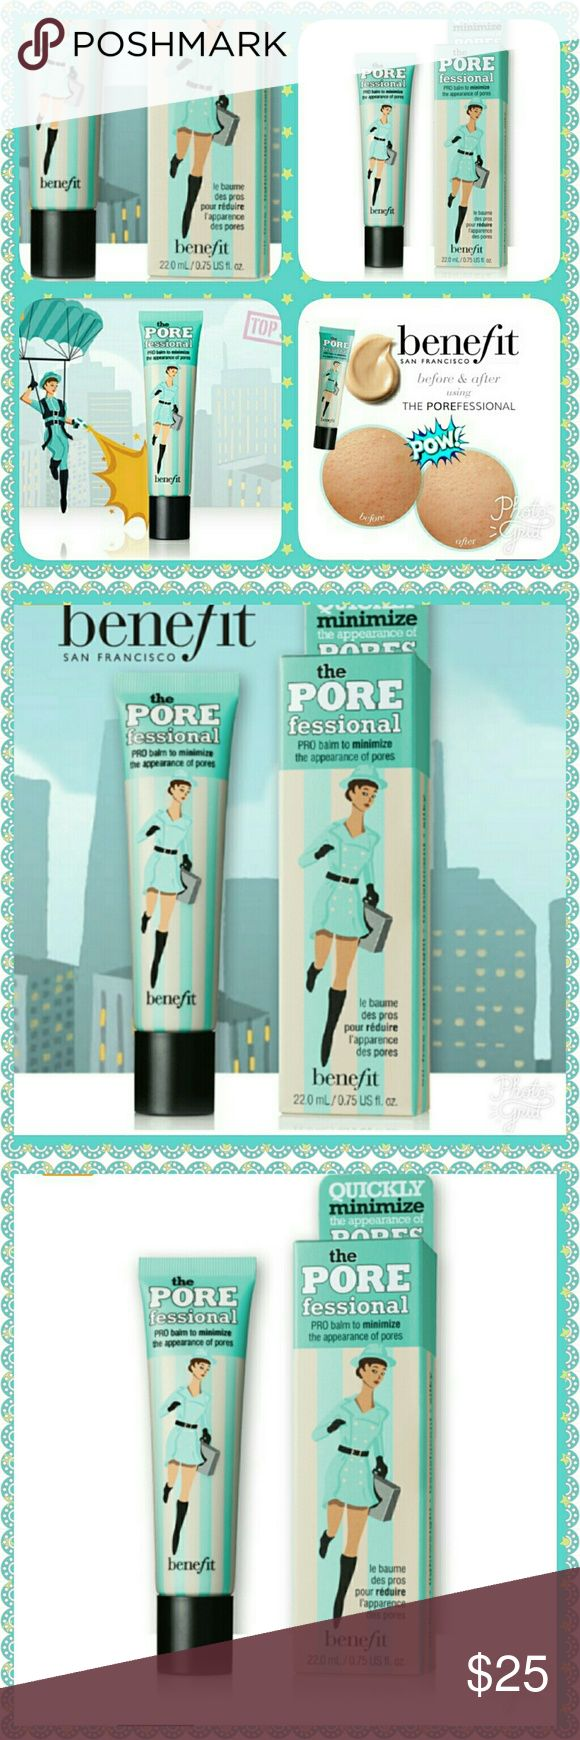 🆕 BENEFIT THE PORE PRO PROFESSIONAL BALM MAKE UP PRIMER ! QUICKLY MINIMIZE OF PORES AND FINE LINES FOR SMOOTHER - THAN - SMOOTH SKIN ! APPLY THIS SILKY, LIGHT WEIGHT BALM ALONE, UNDER OR OVER MAKE UP.  COMPLEMENTS ALL SKIN TONES. Benefit Makeup